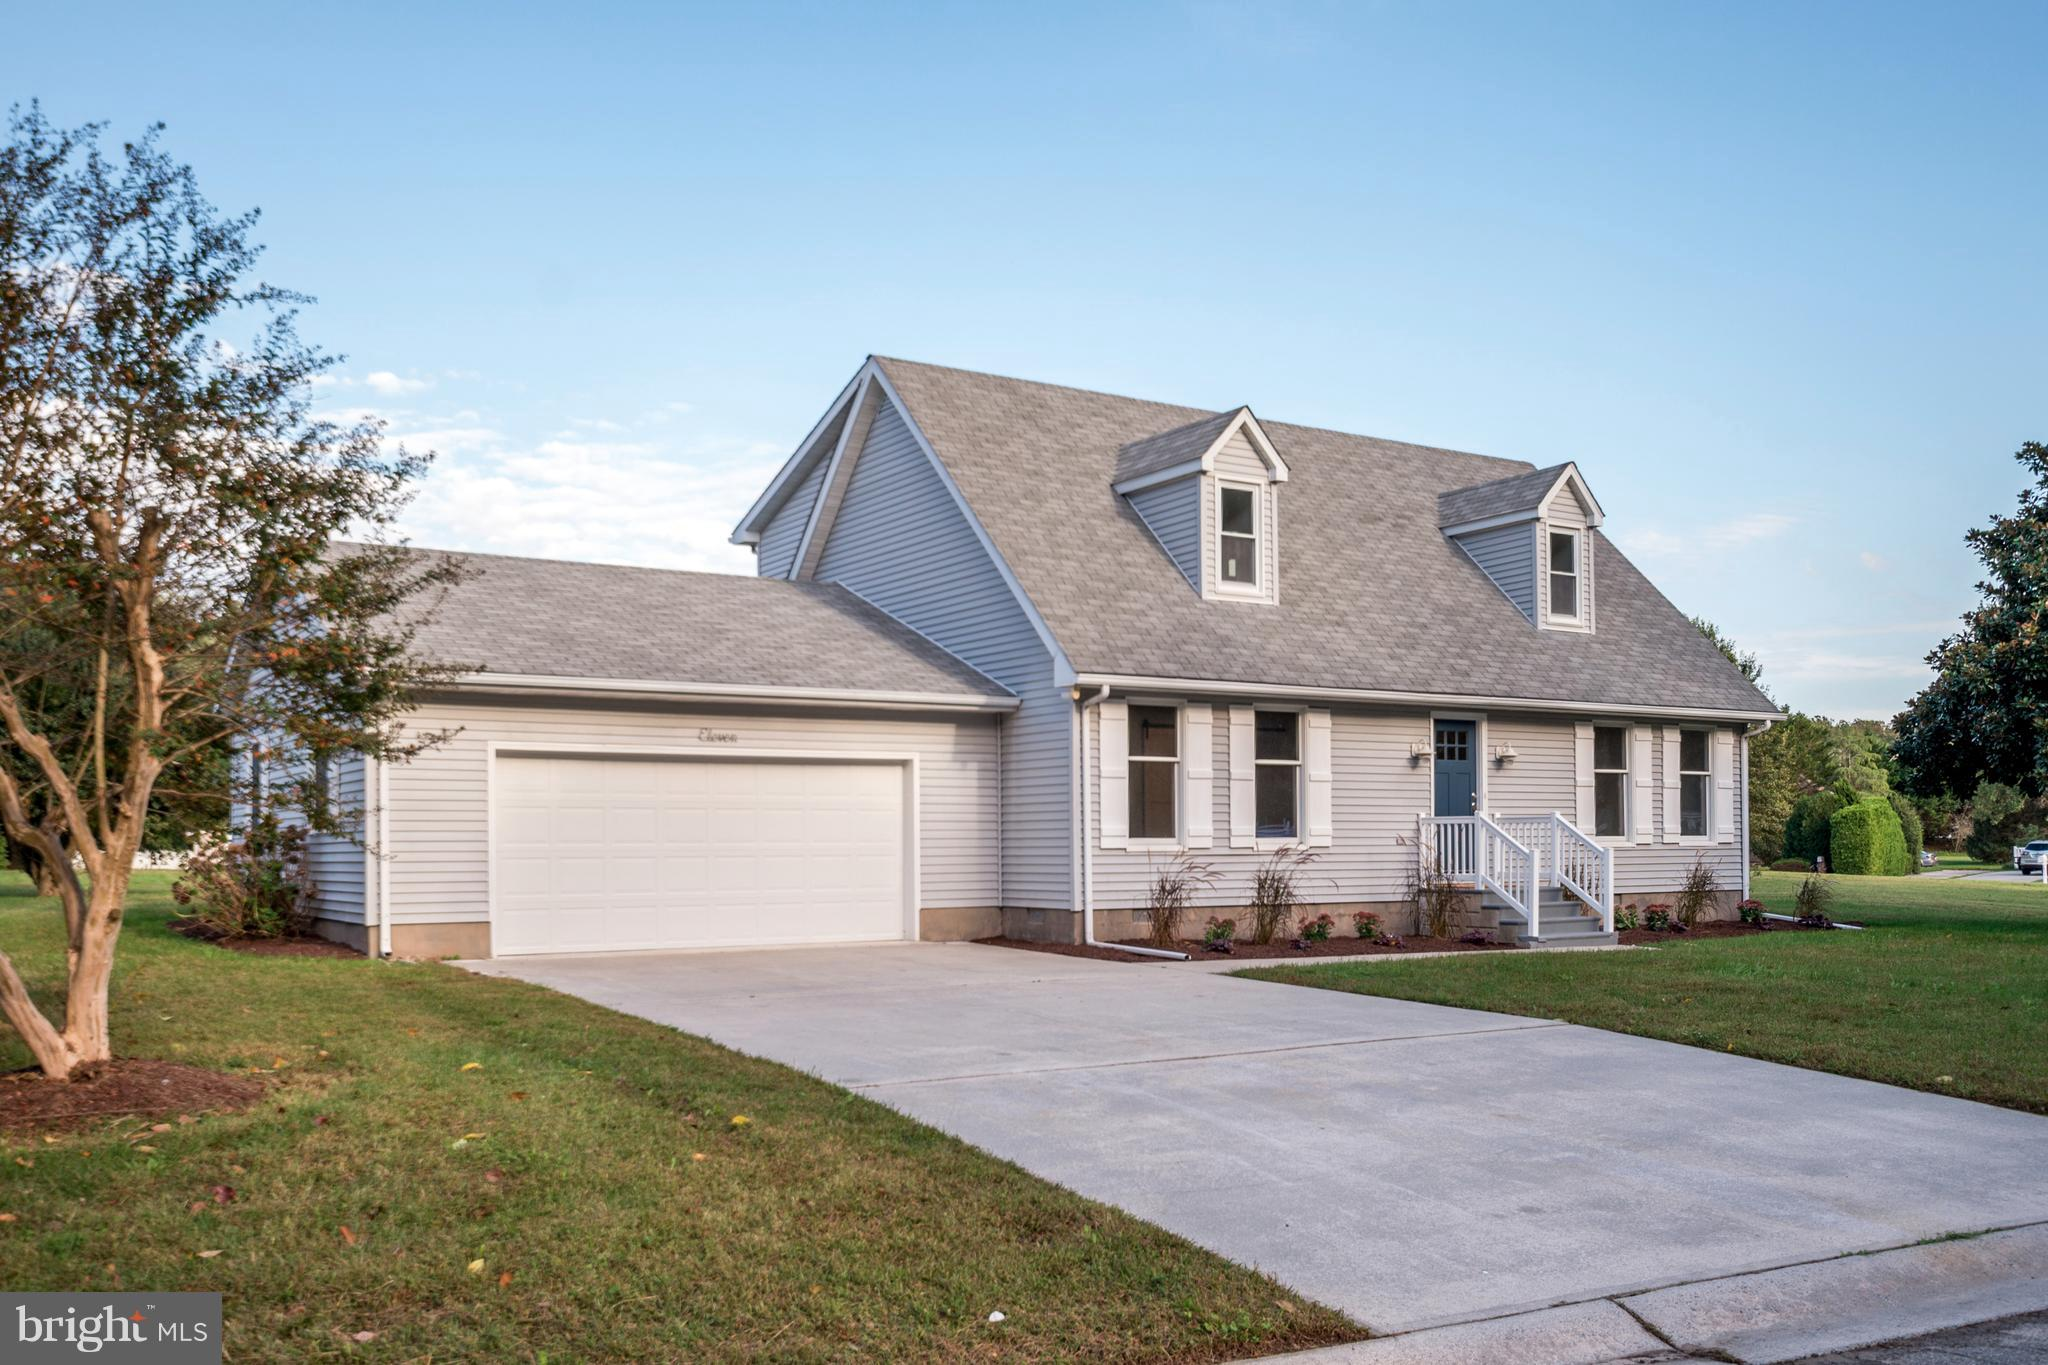 This four bedroom, three full bath, like new, single family home comes in at 2000 ft.~ and sits on .